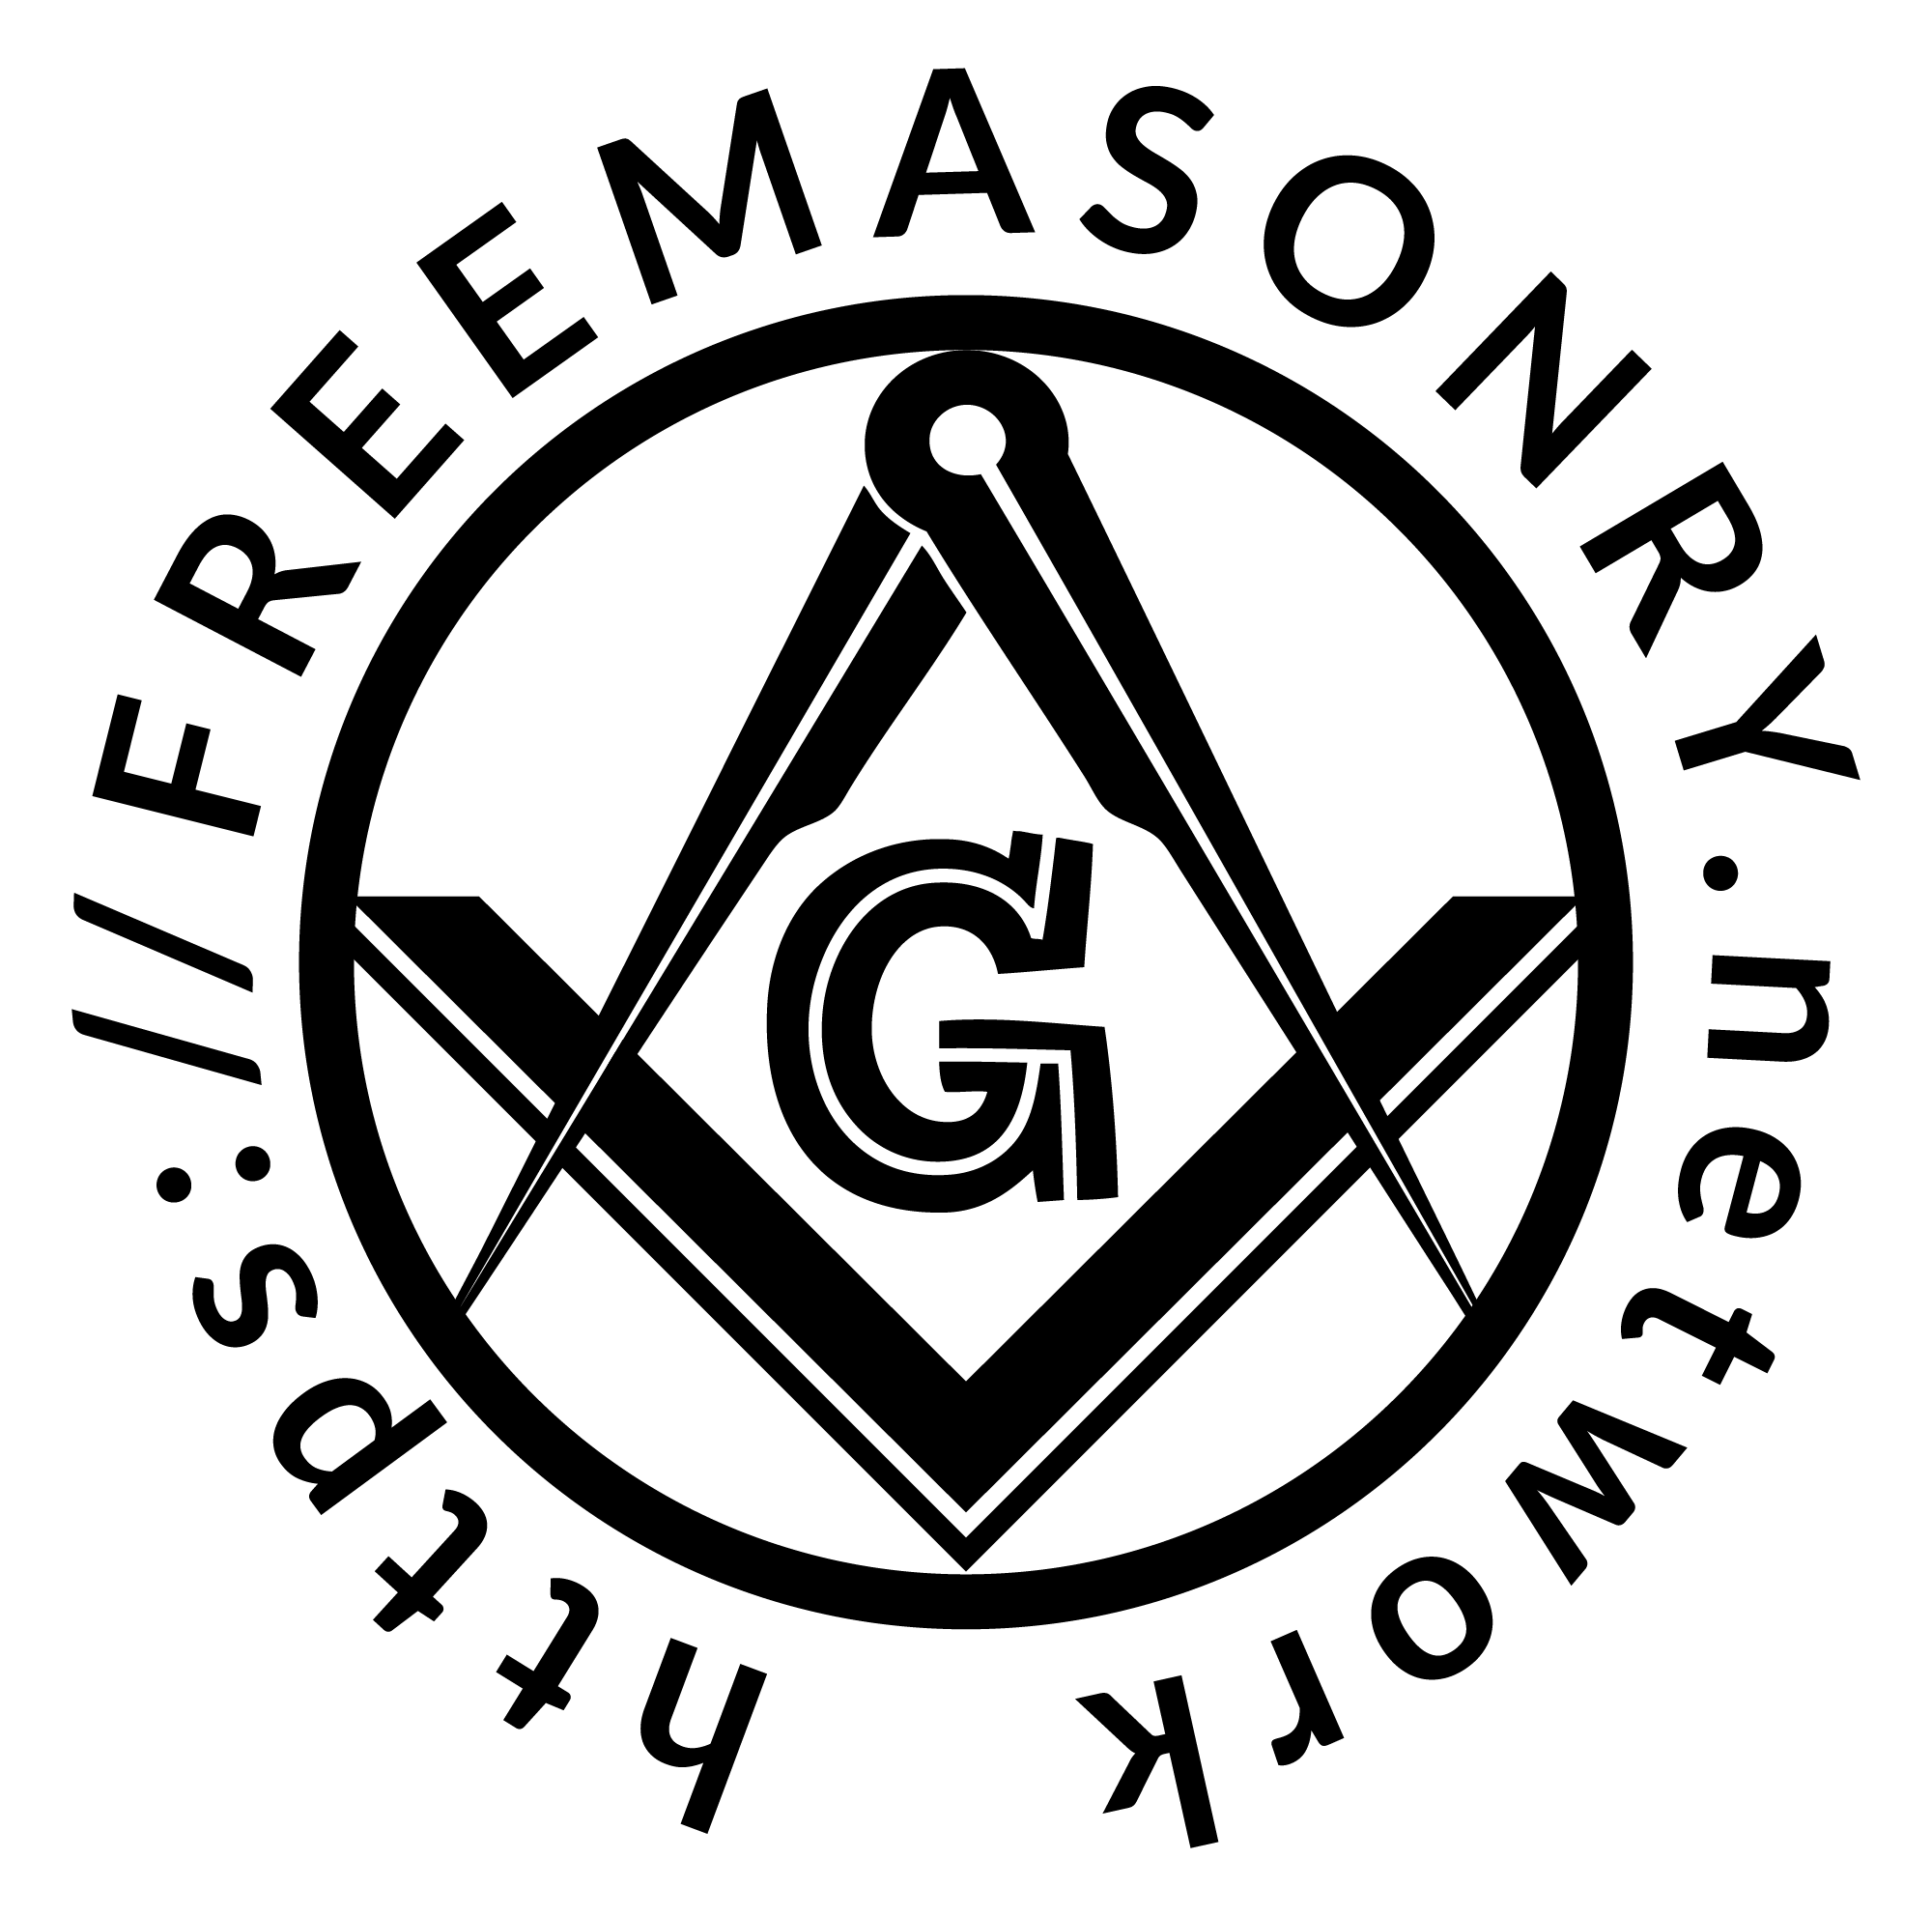 FREEMASONRY IN FORT LEAVEWORTH